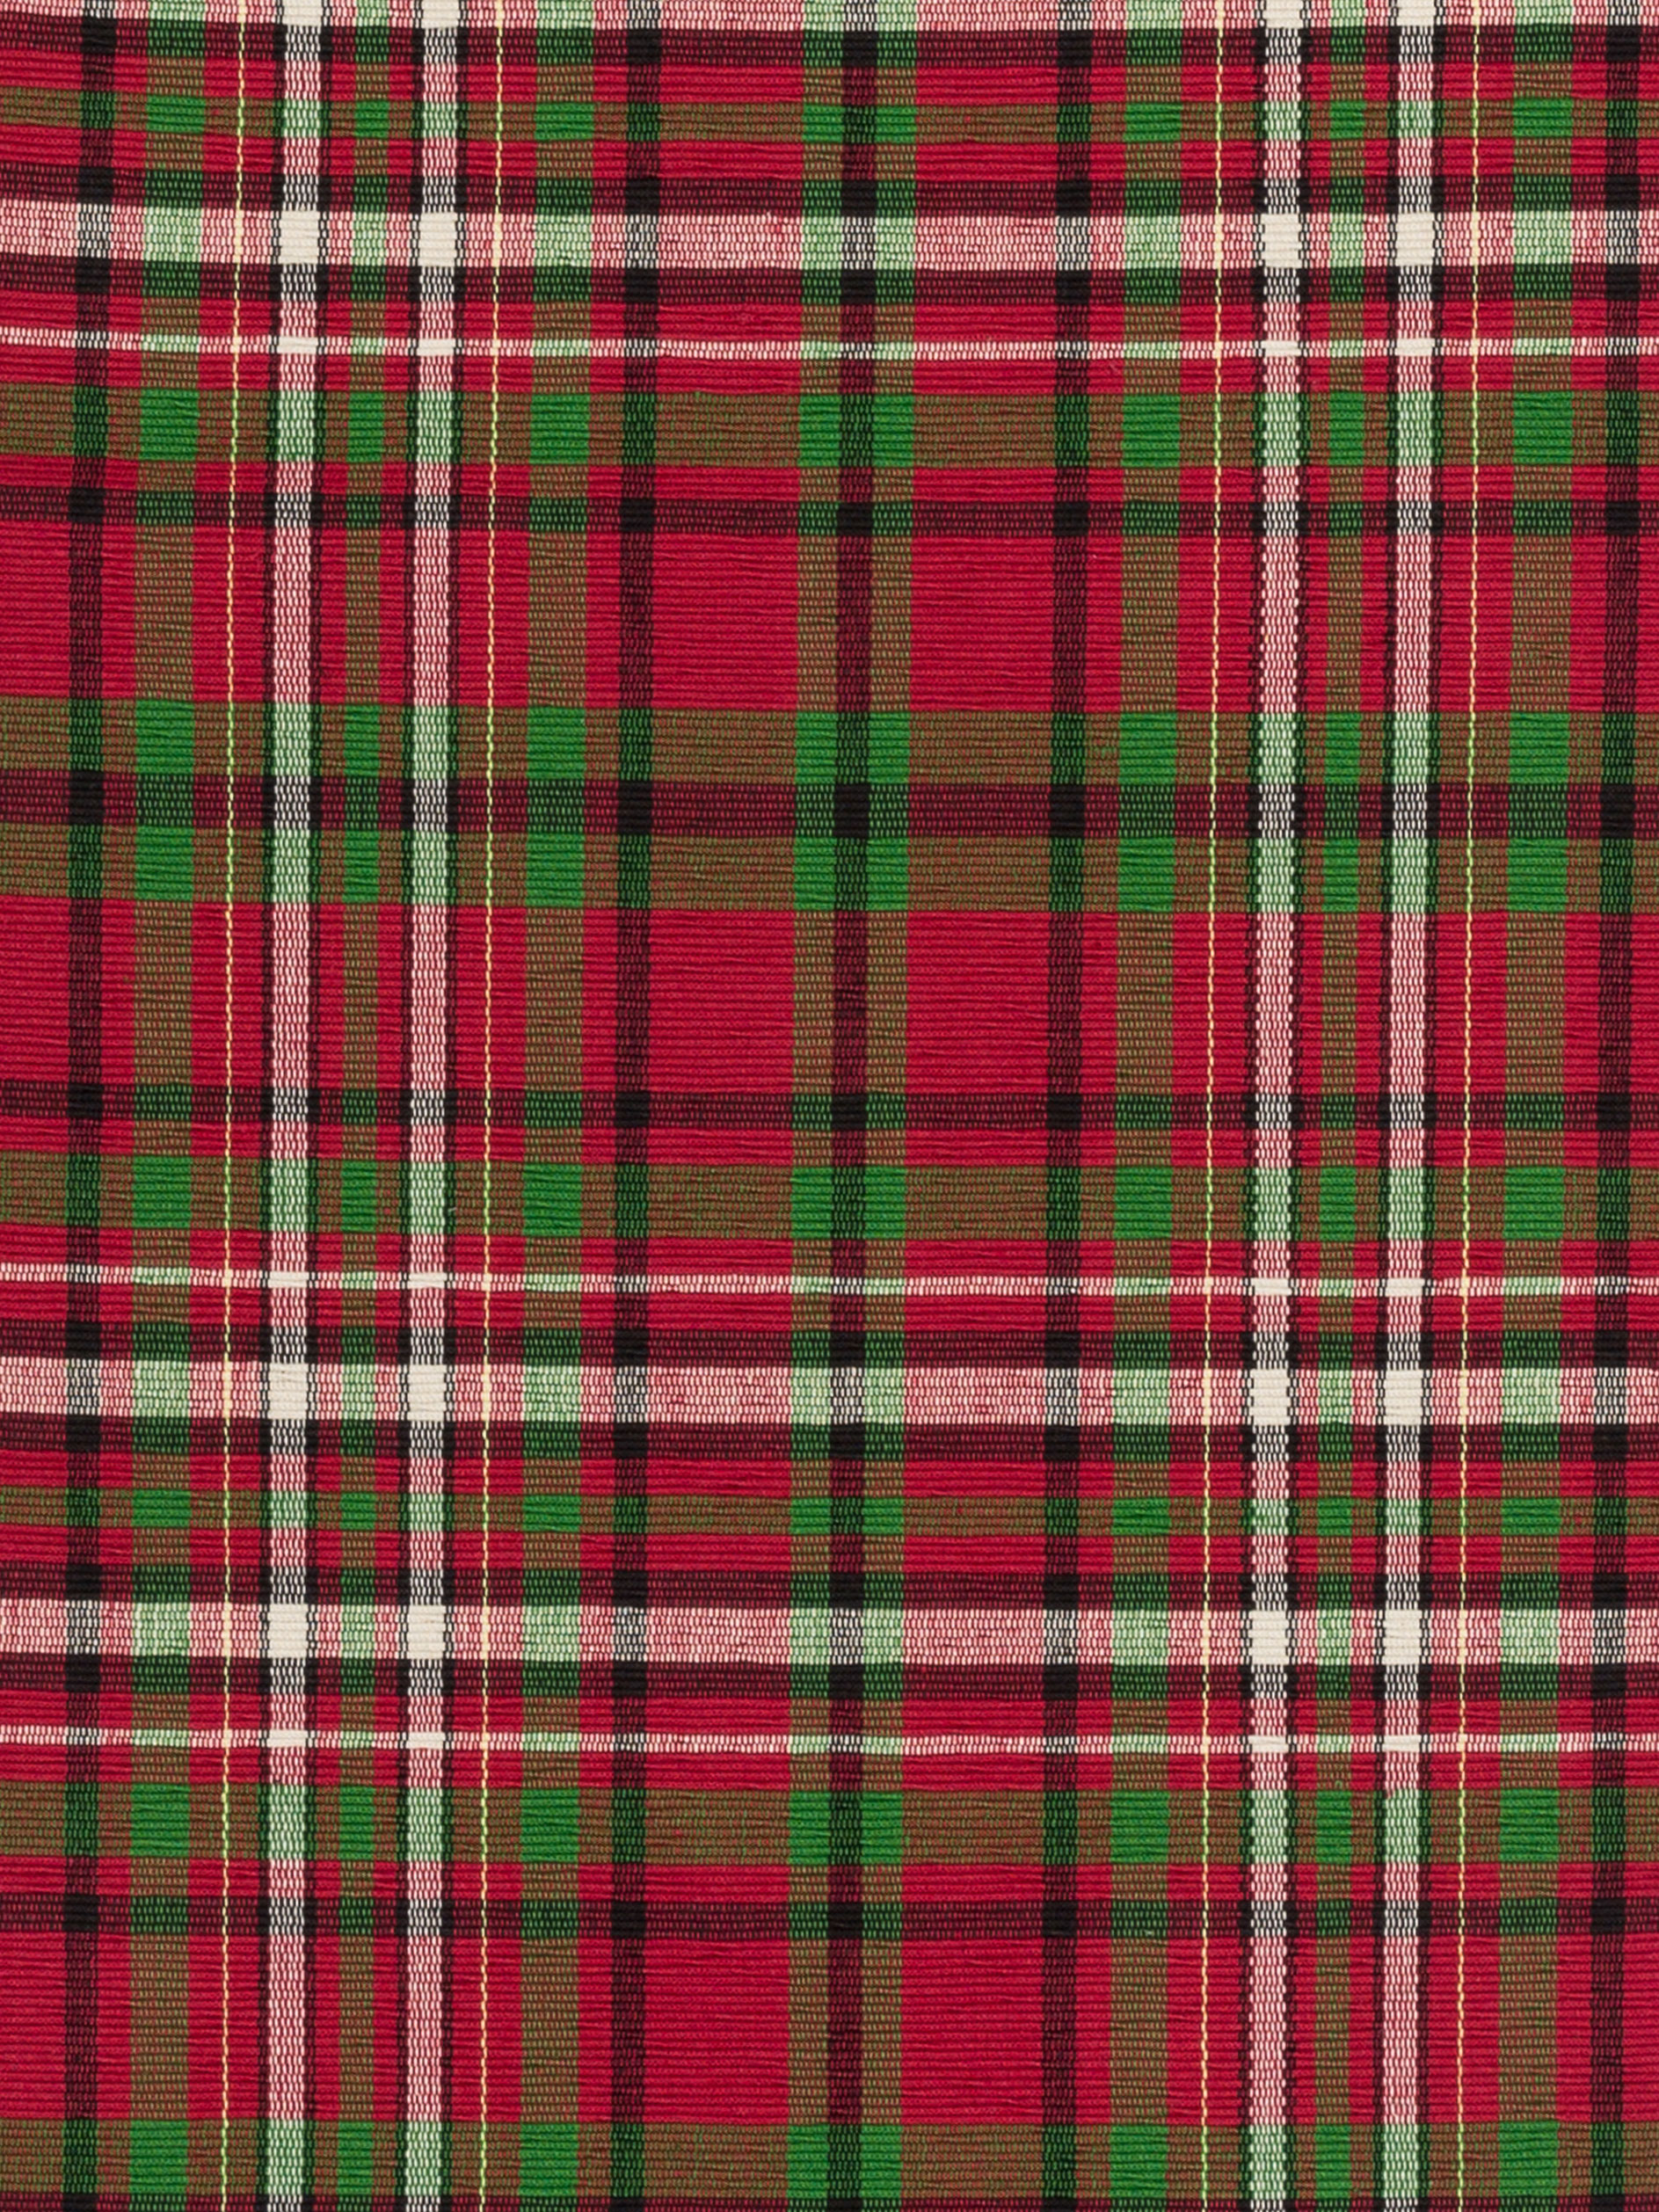 christmas plaid runner - Christmas Plaid